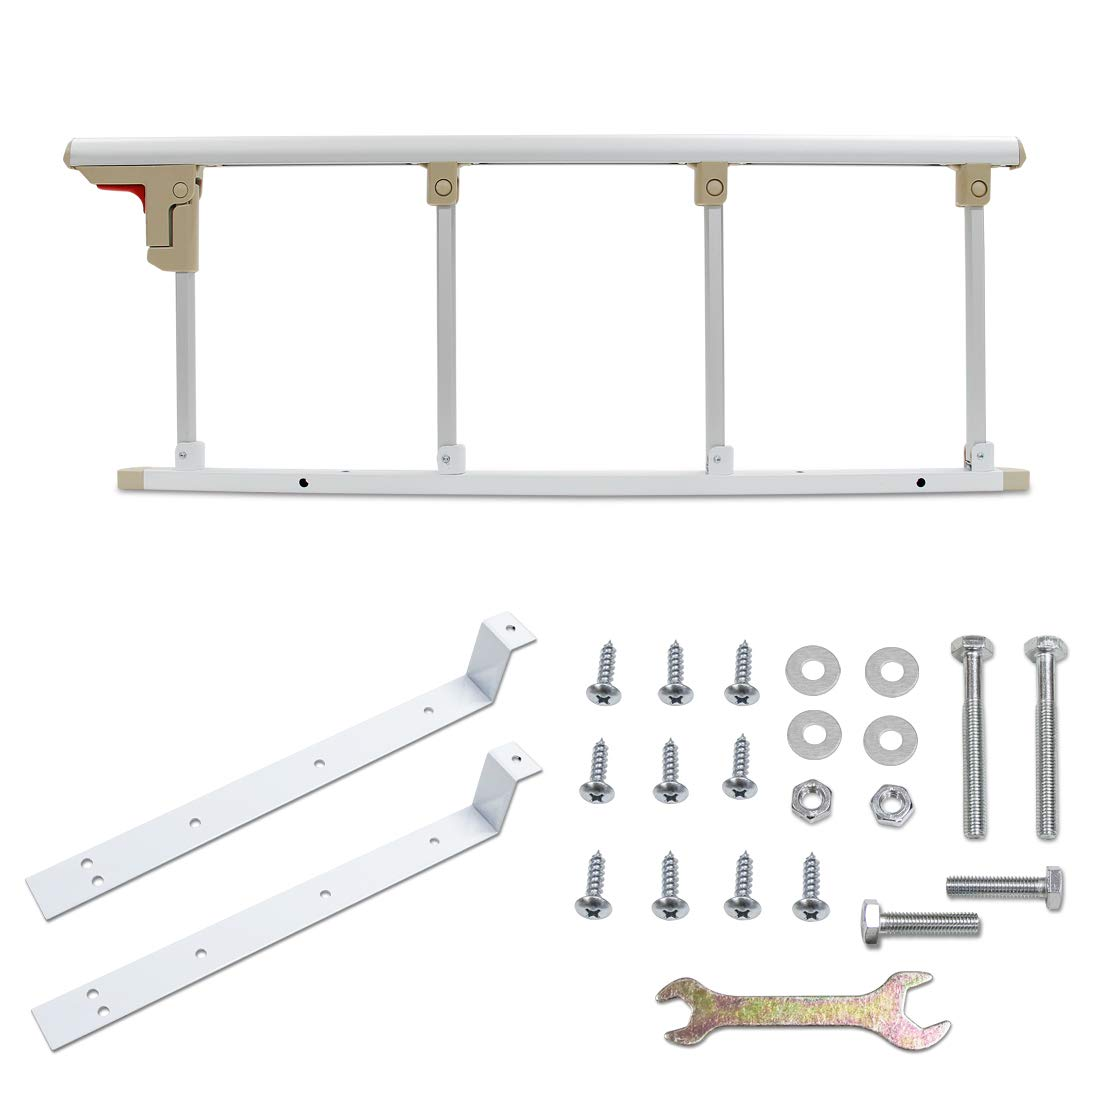 Signstek Bed Rail Safety Side Aluminium Alloy Bed Rails with One Key Folding for Kids Children Adults Toddler Assist Handle Handicap Bed Railing